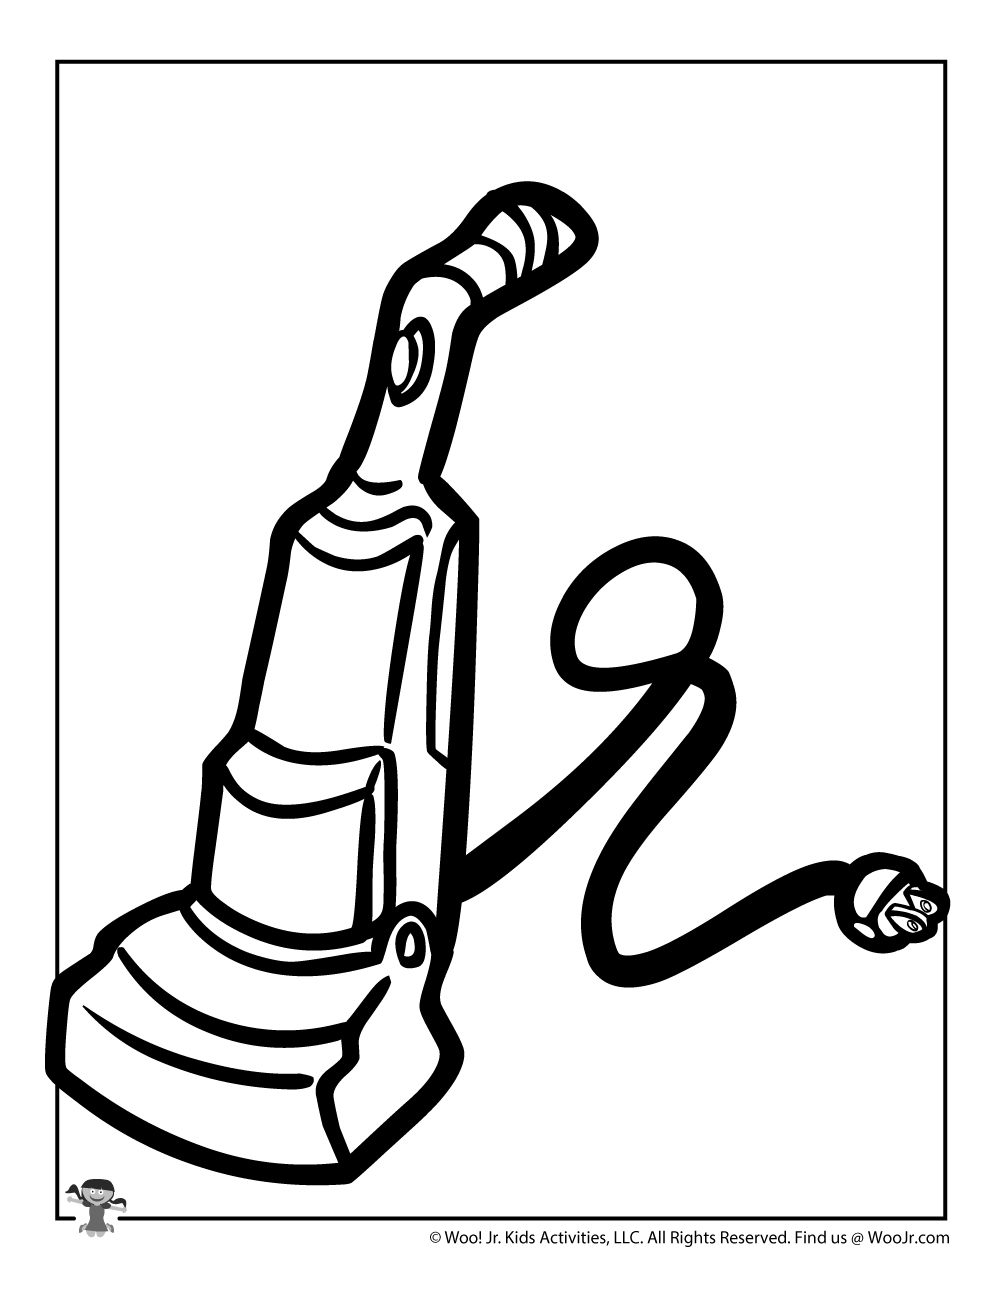 Vacuum Coloring Page | Woo! Jr. Kids Activities Vacuum Coloring Pages